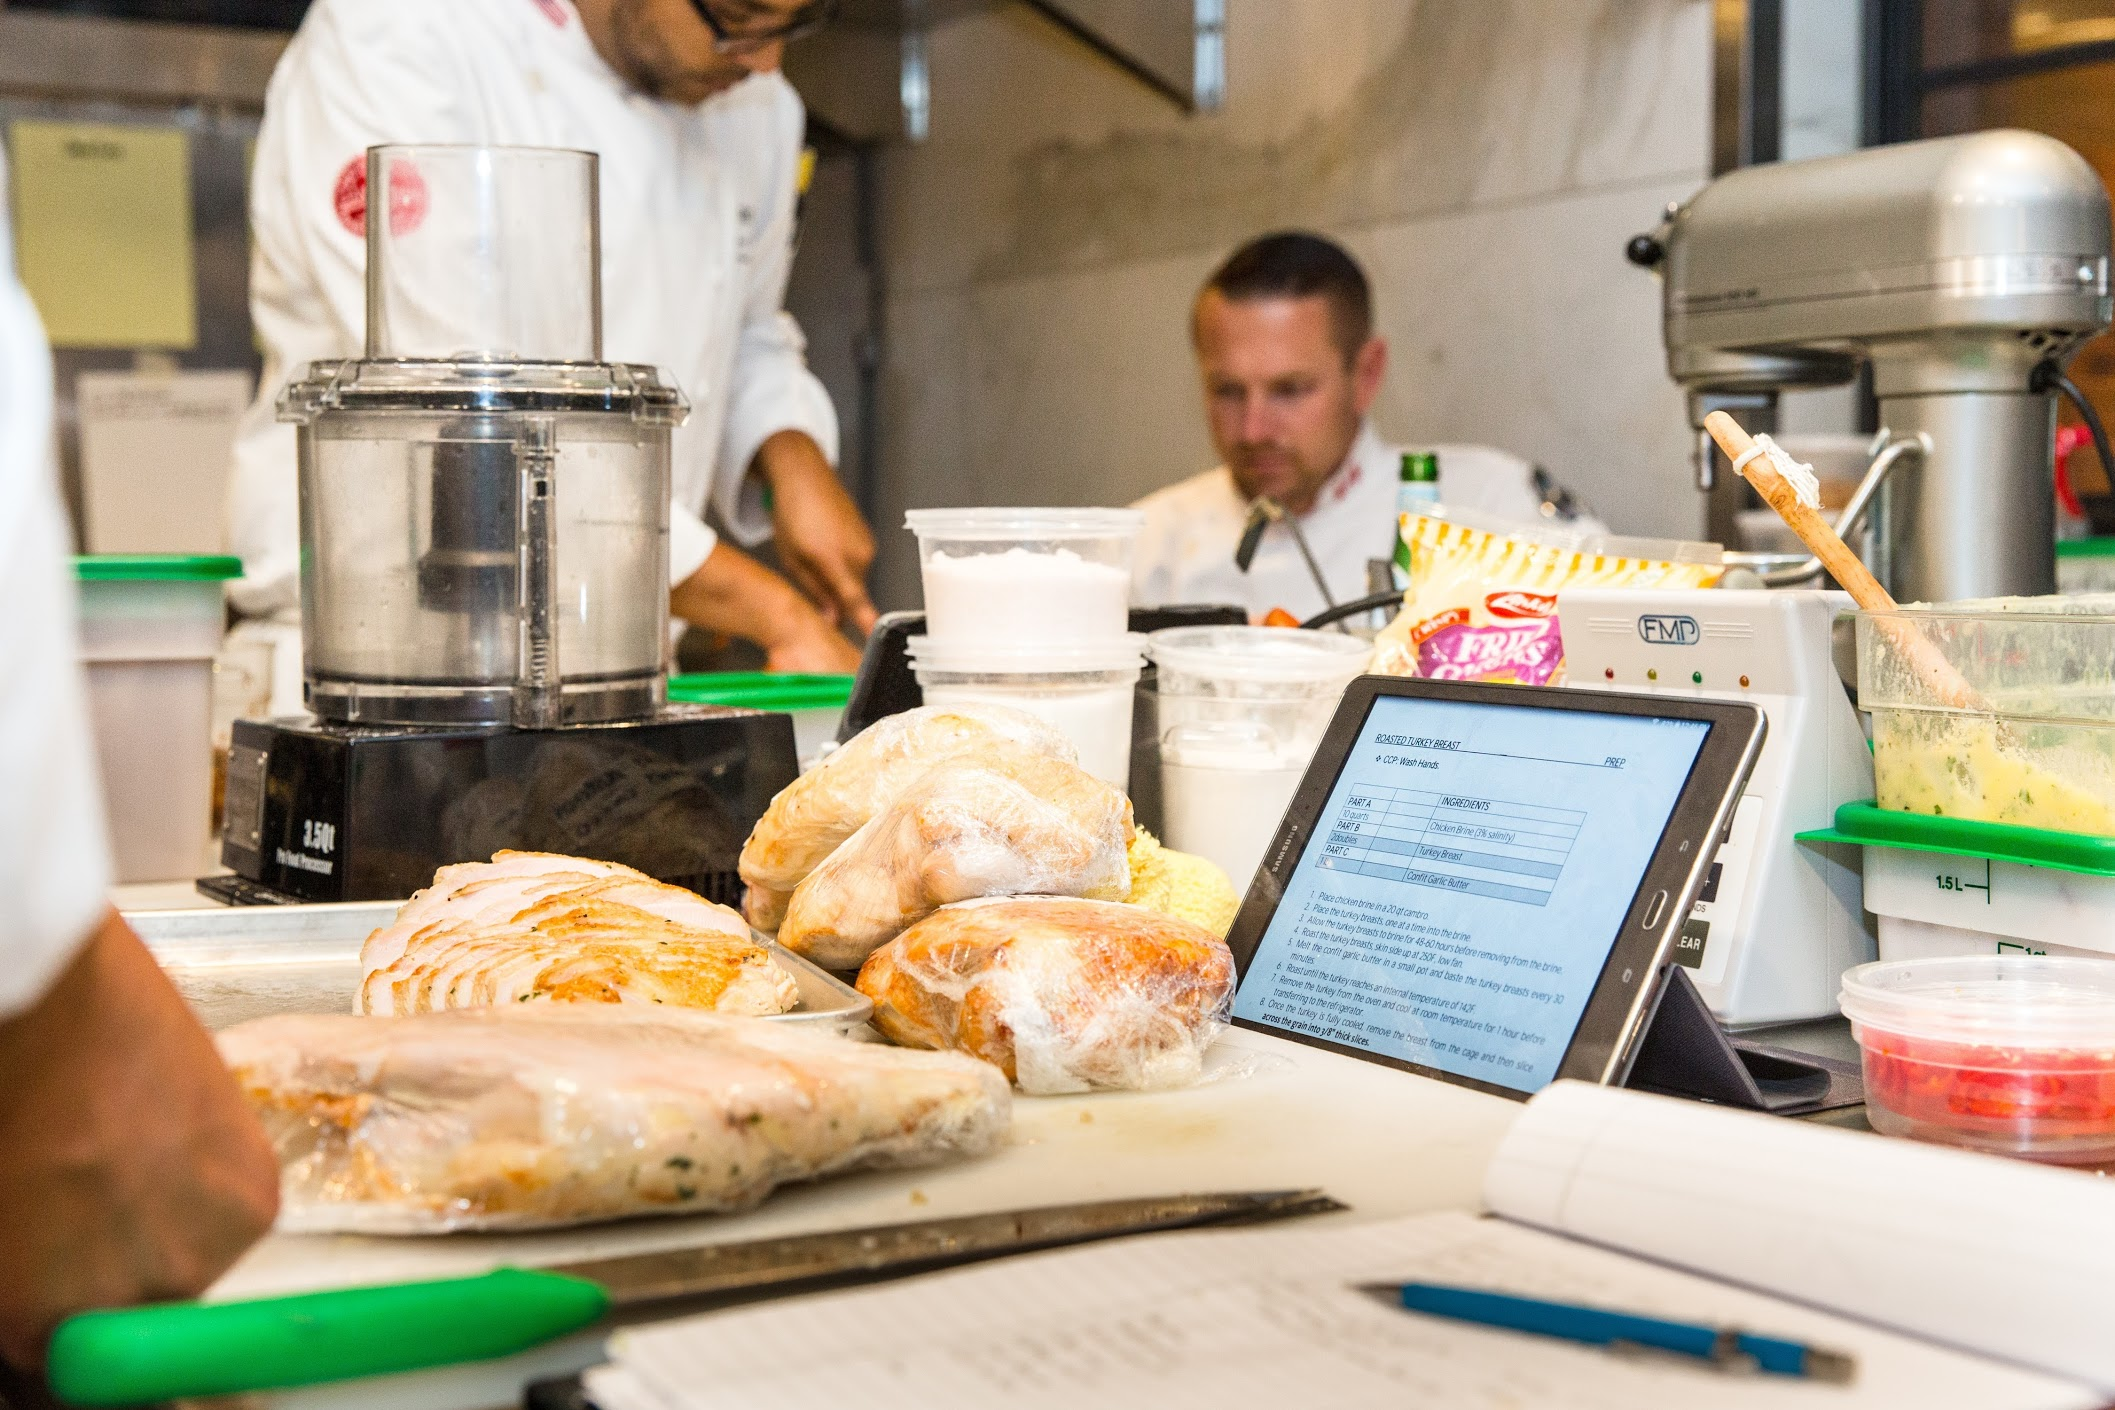 Earls' chefs pulling recipes directly on their tablet devices with Google Apps